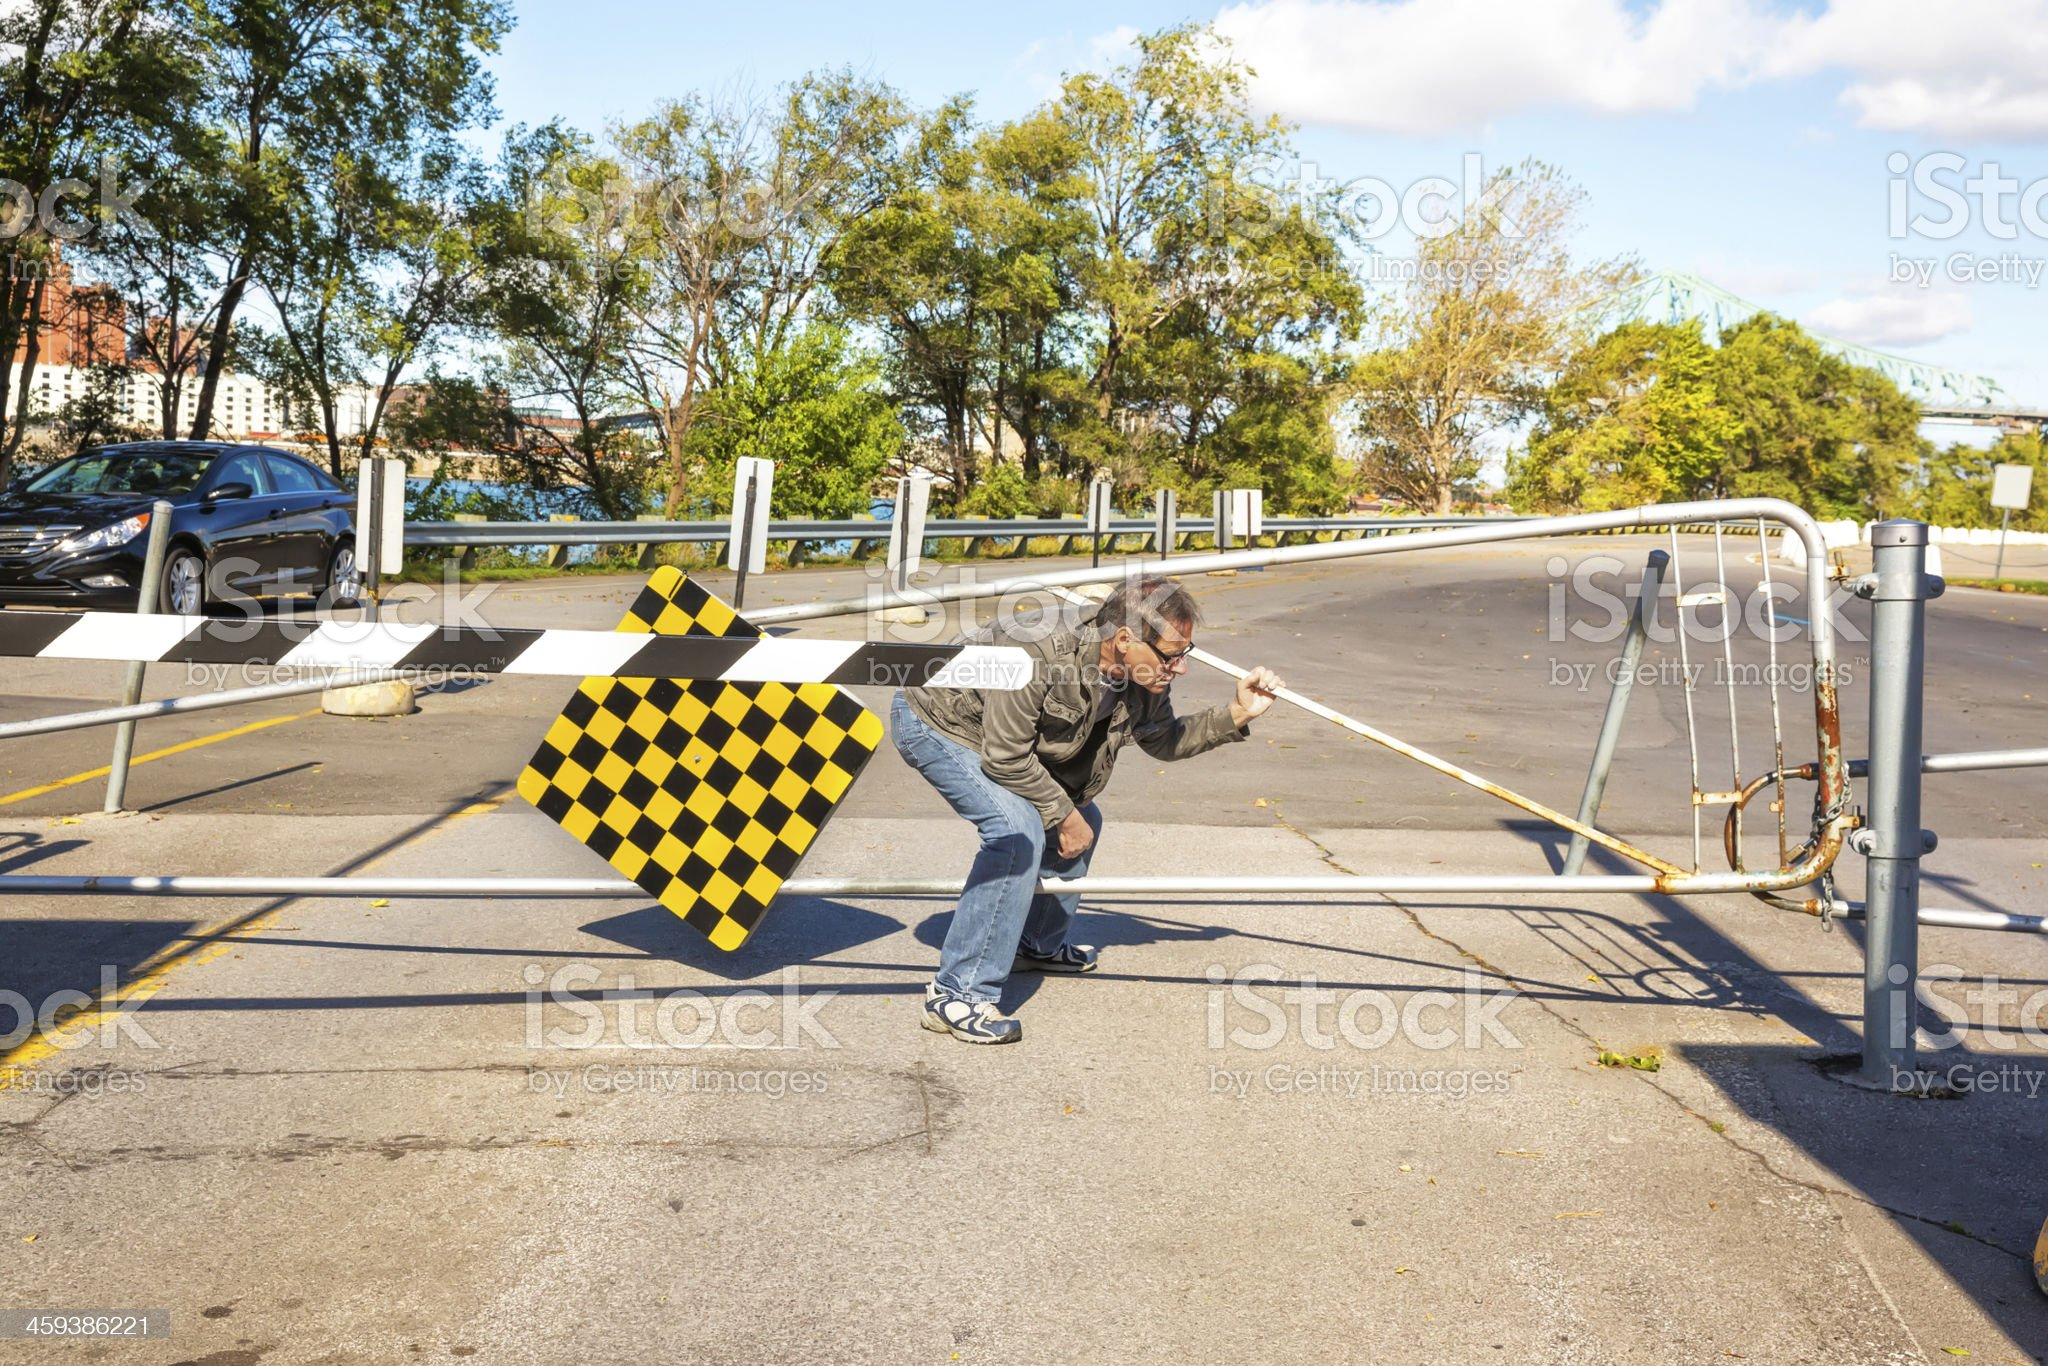 Man tries to go under road crossing barrier royalty-free stock photo